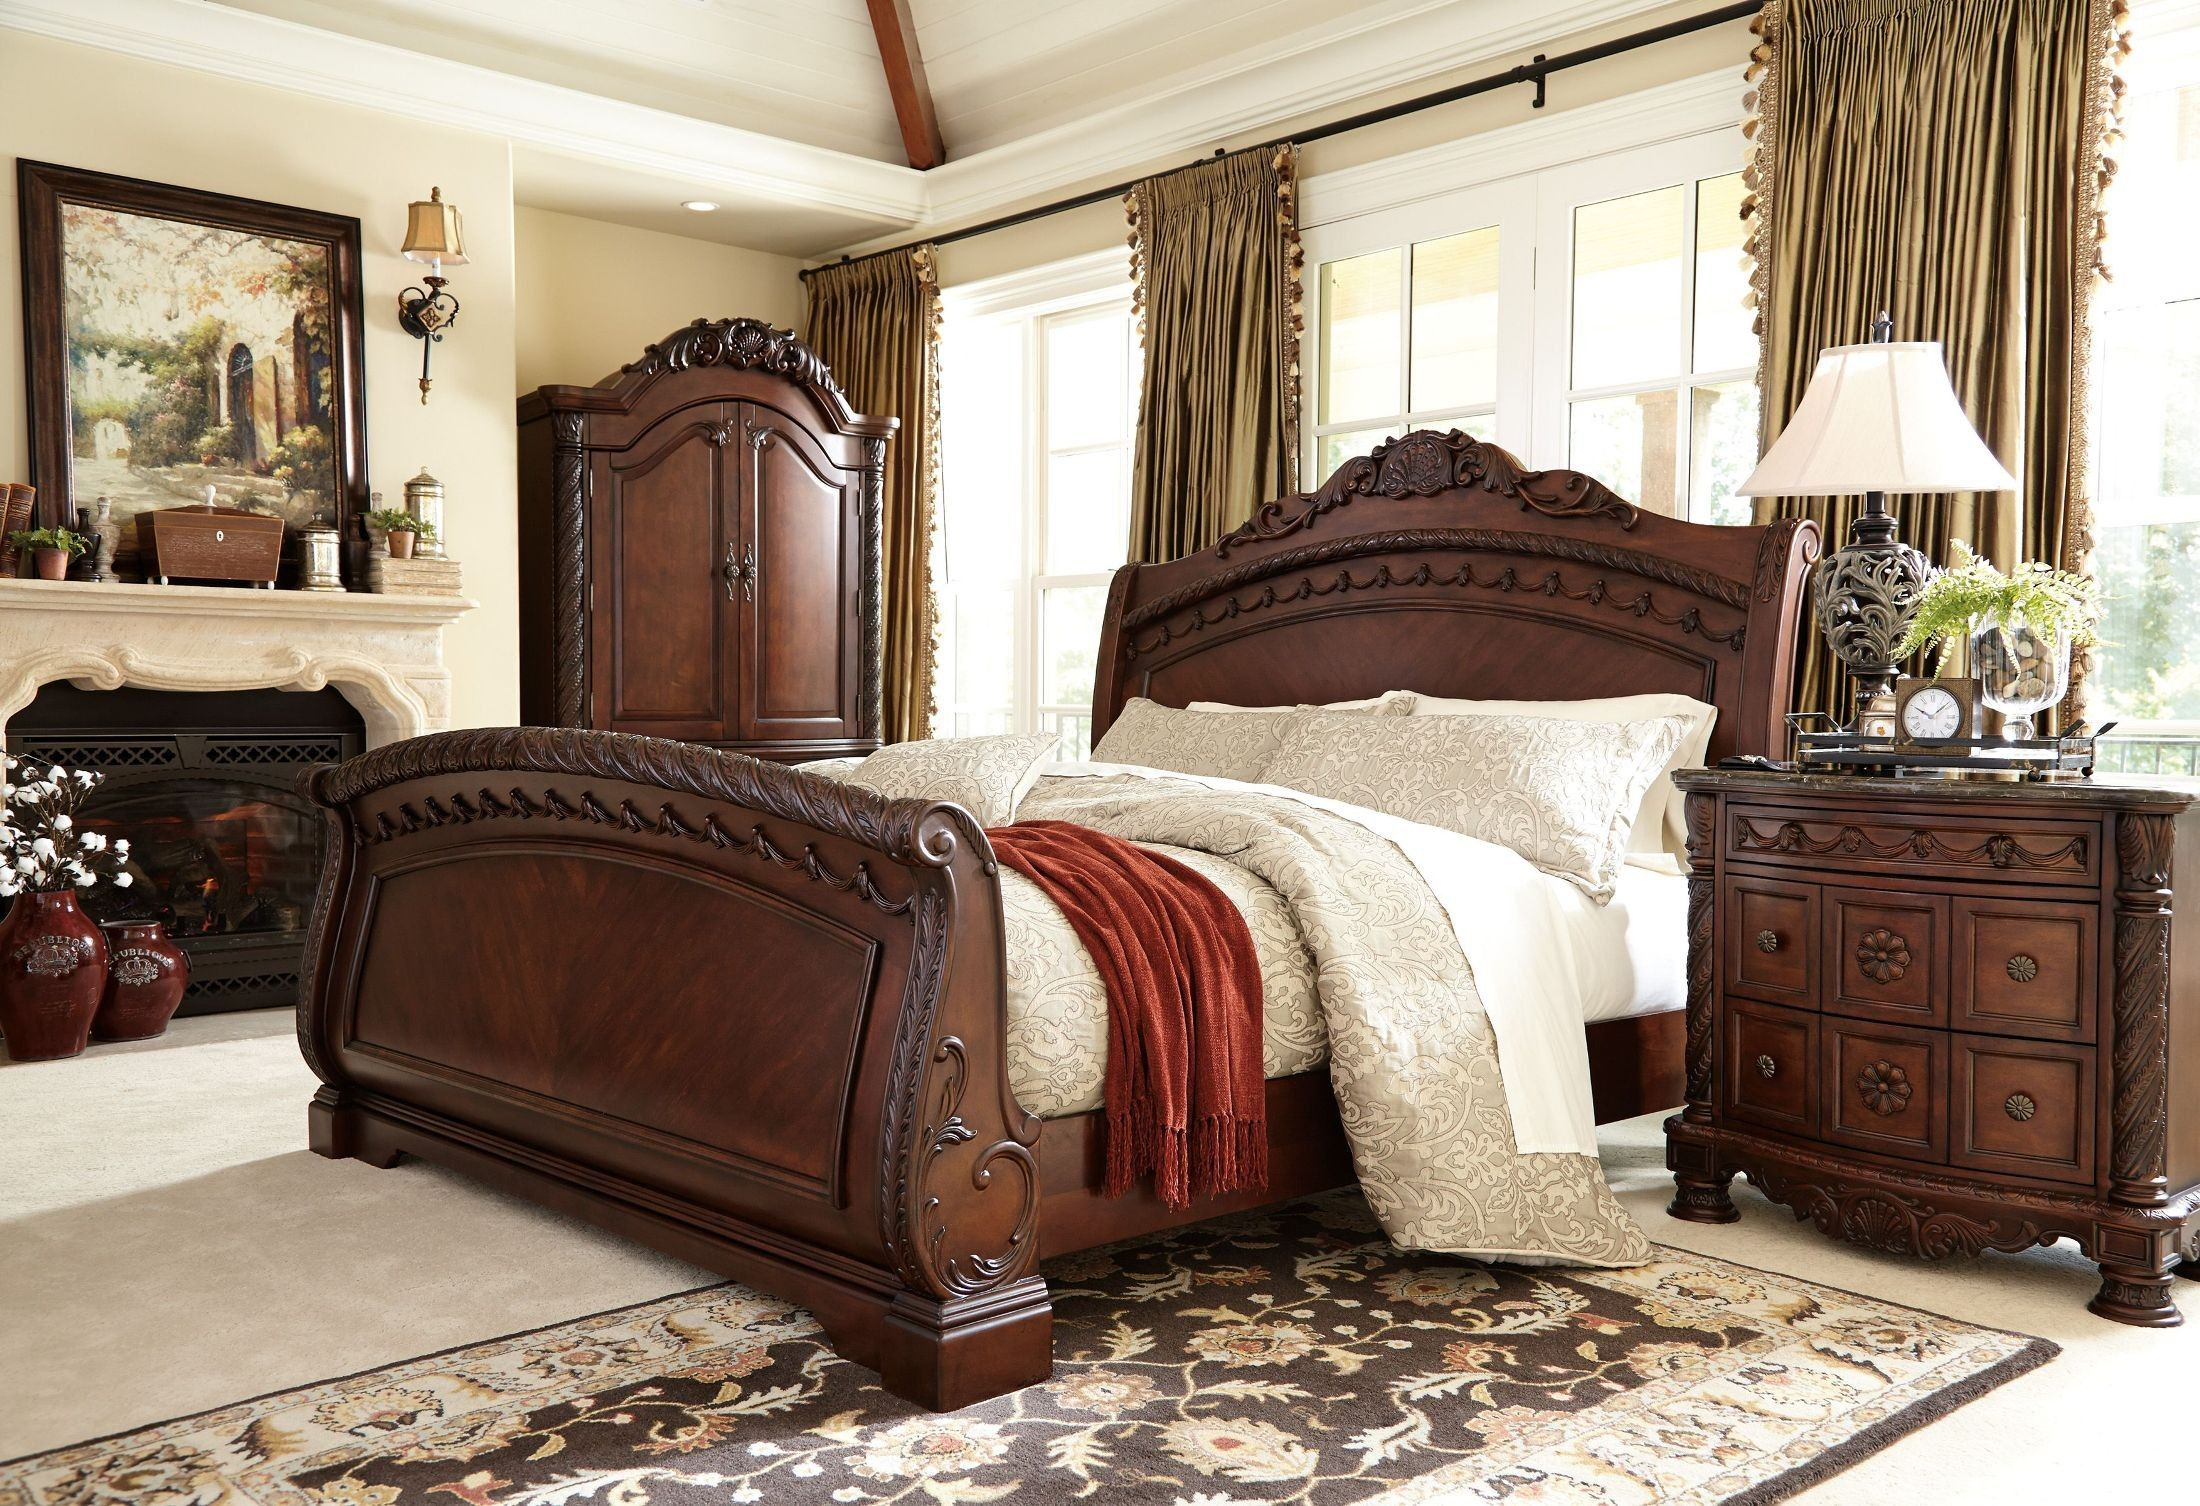 king sleigh bedroom sets. North Shore Sleigh Bedroom Set For a stylish bed and nightstand combination look no further than